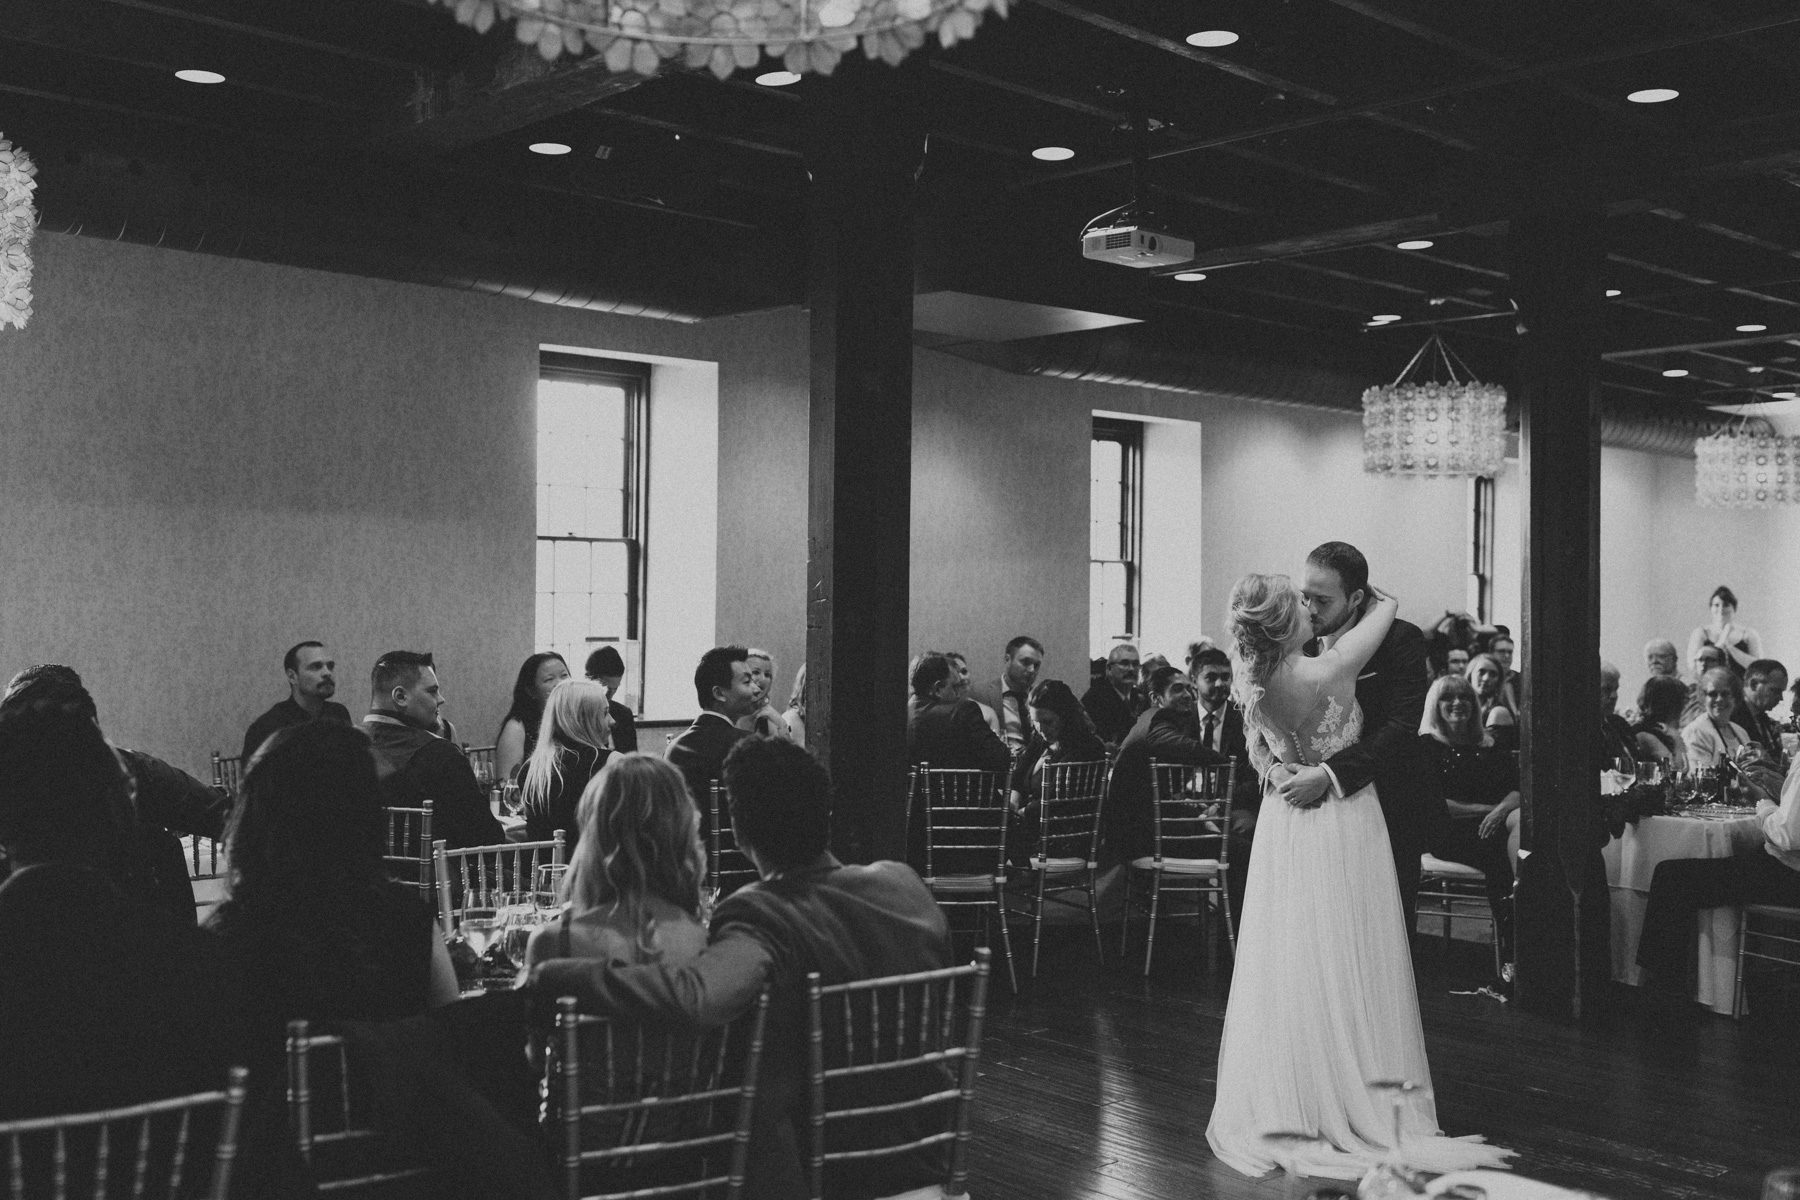 Ancaster-Old-Mill-wedding-photography-by-Sam-Wong-of-Artanis-Collective-Amber-Lee-and-Thomas_42.jpg